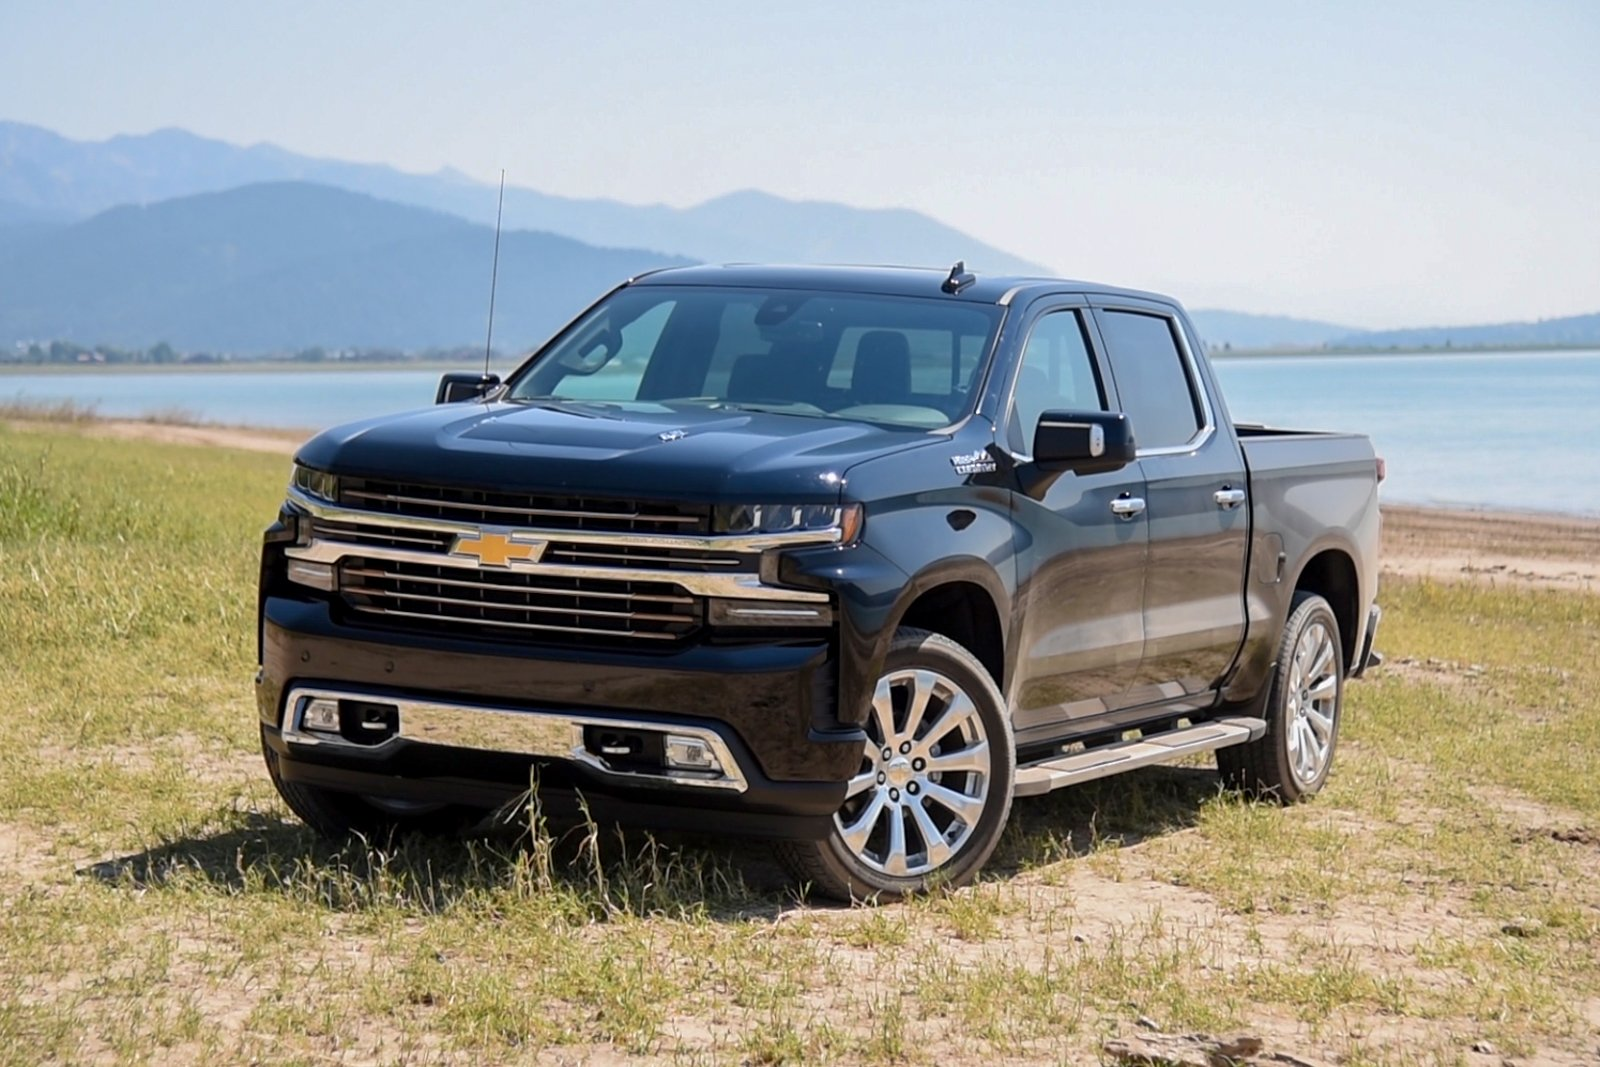 2019 Chevrolet Silverado Review – VIDEO - AutoGuide.com